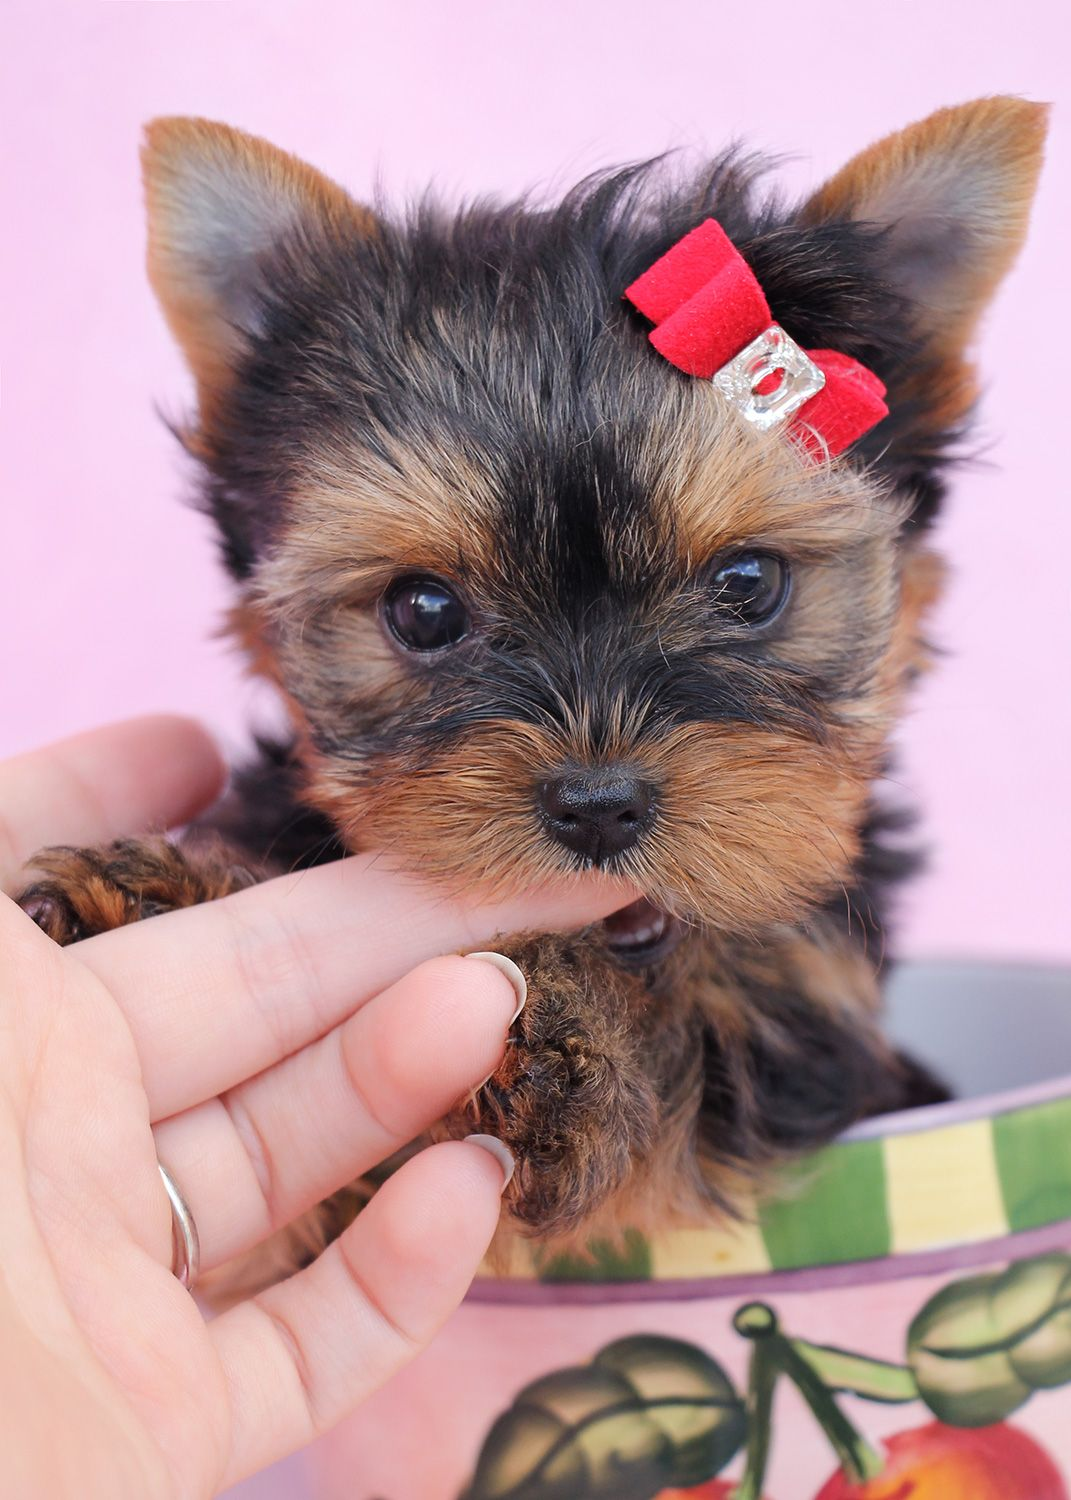 Look - Teacup Micro yorkie puppies for sale video